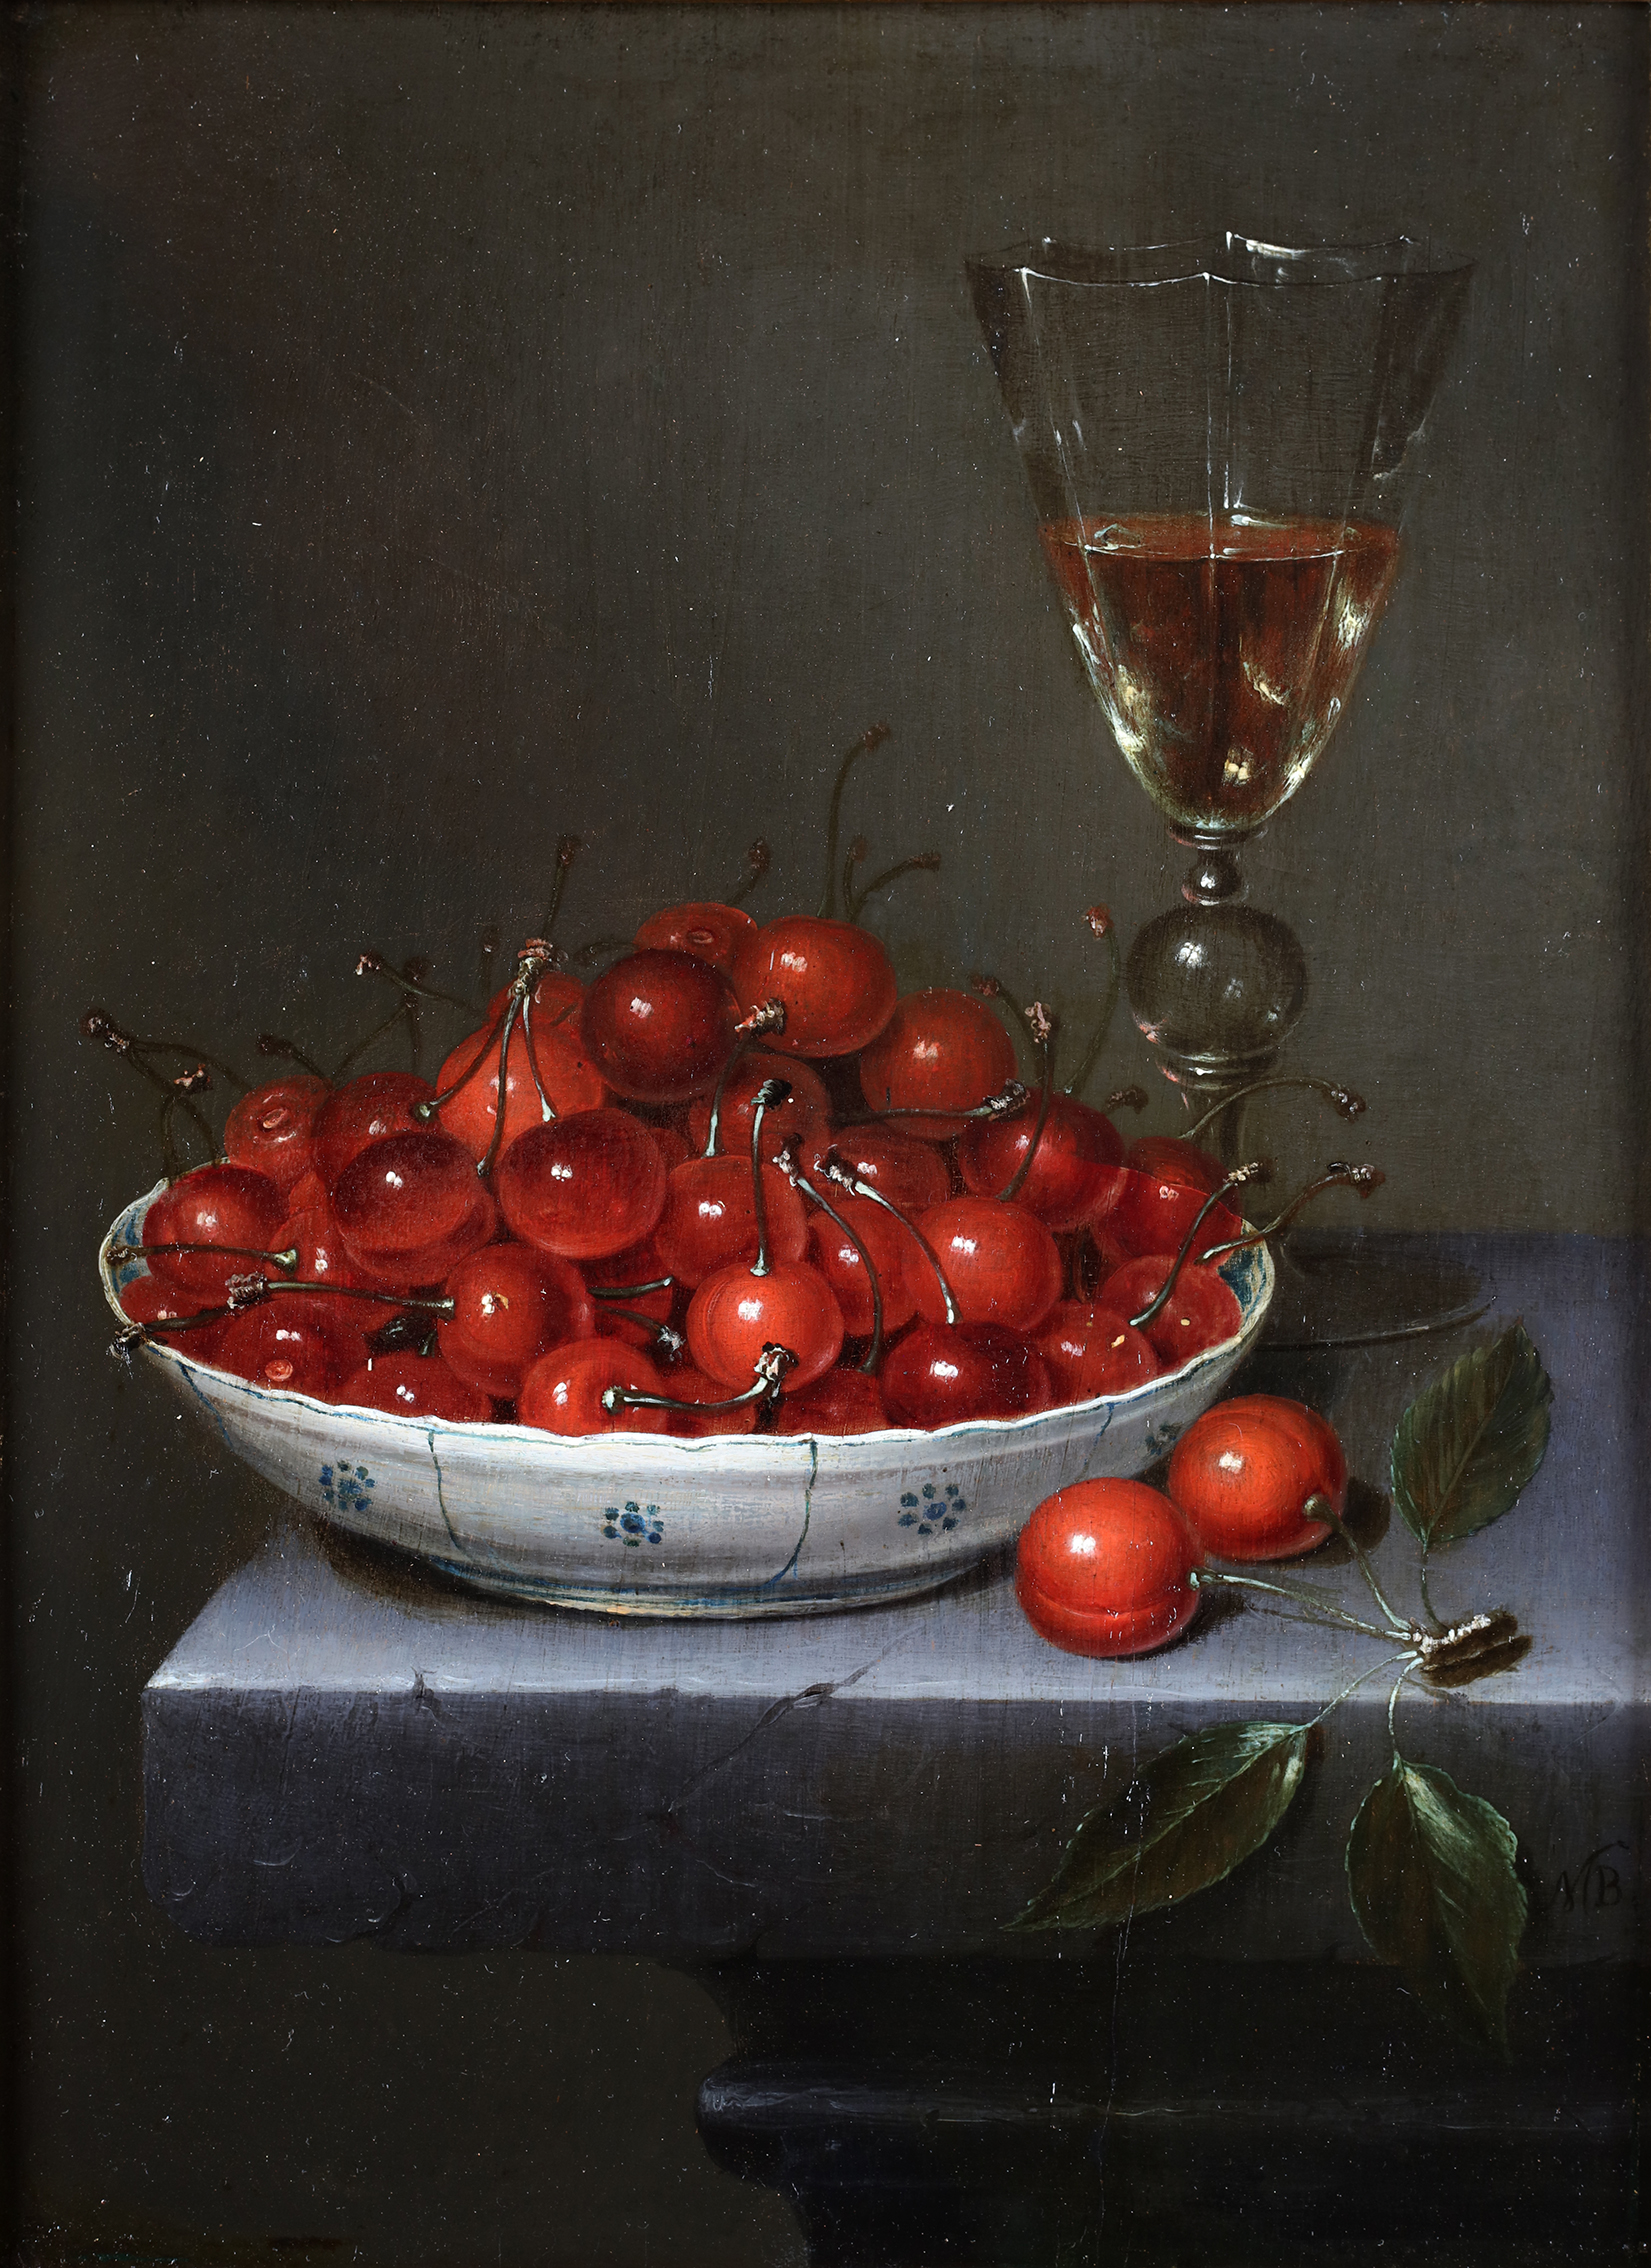 A still-life with cherries in a wanli dish and a glass of wine